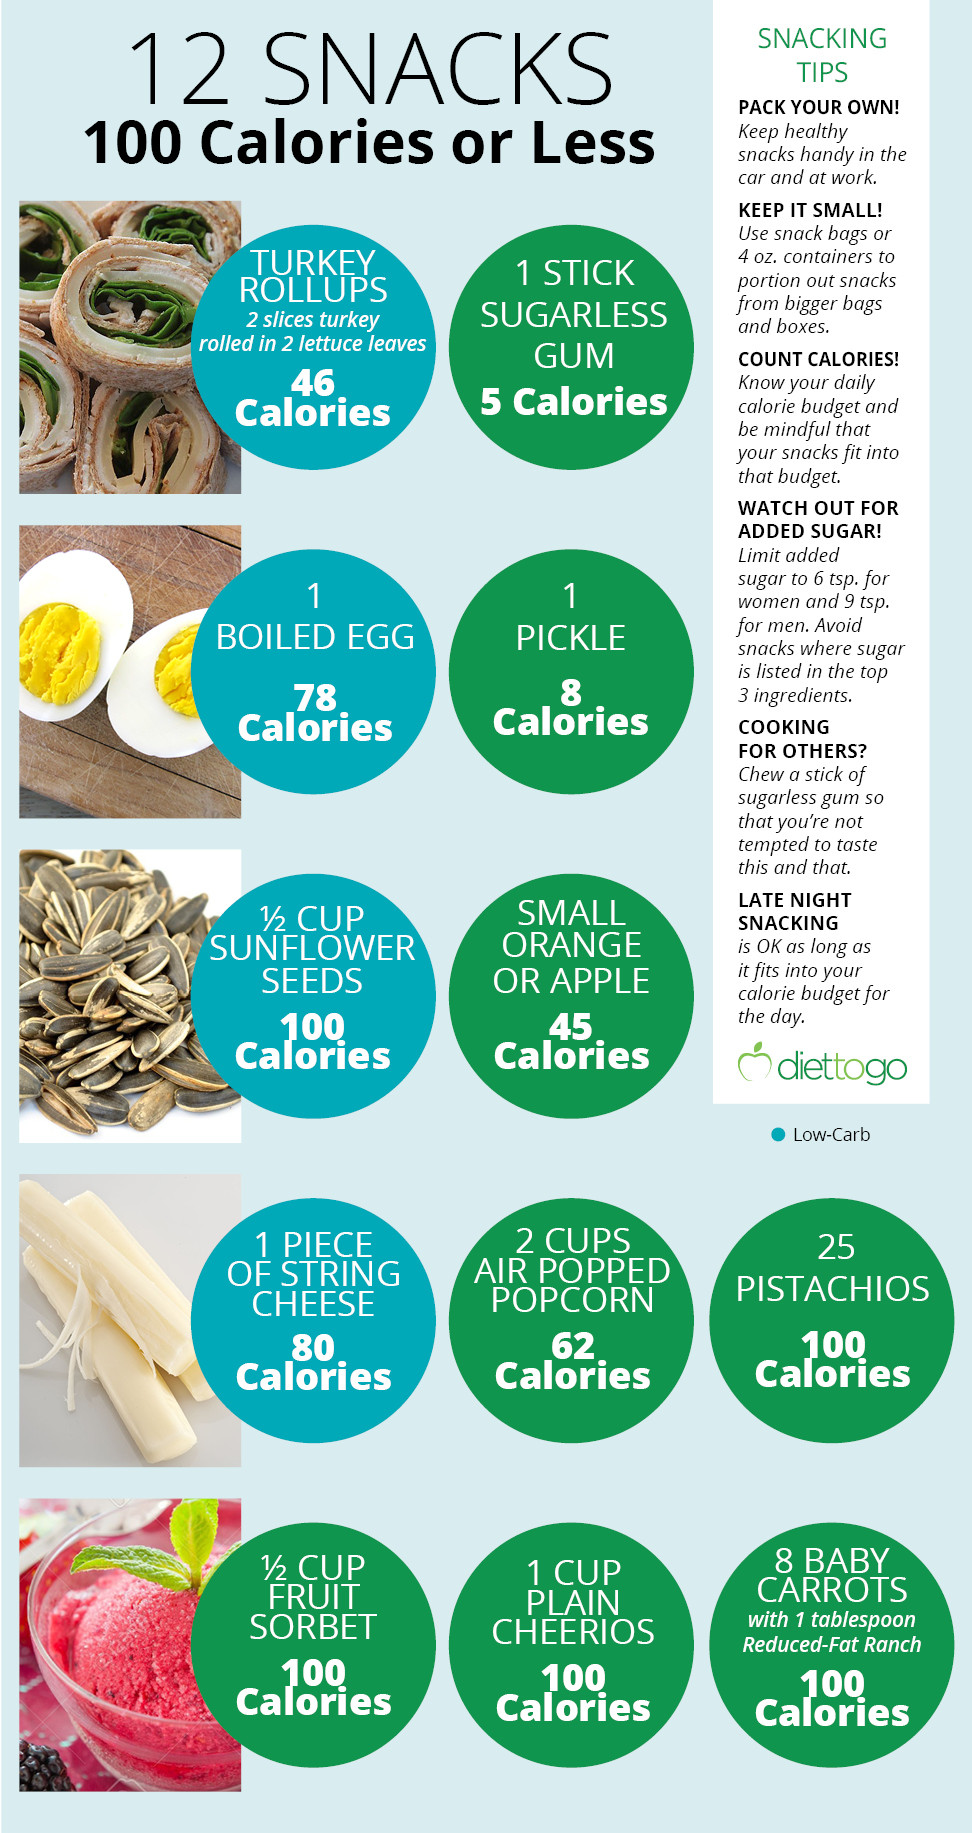 100 Calorie Snacks List  12 Healthy Snacks for 100 Calories or Less